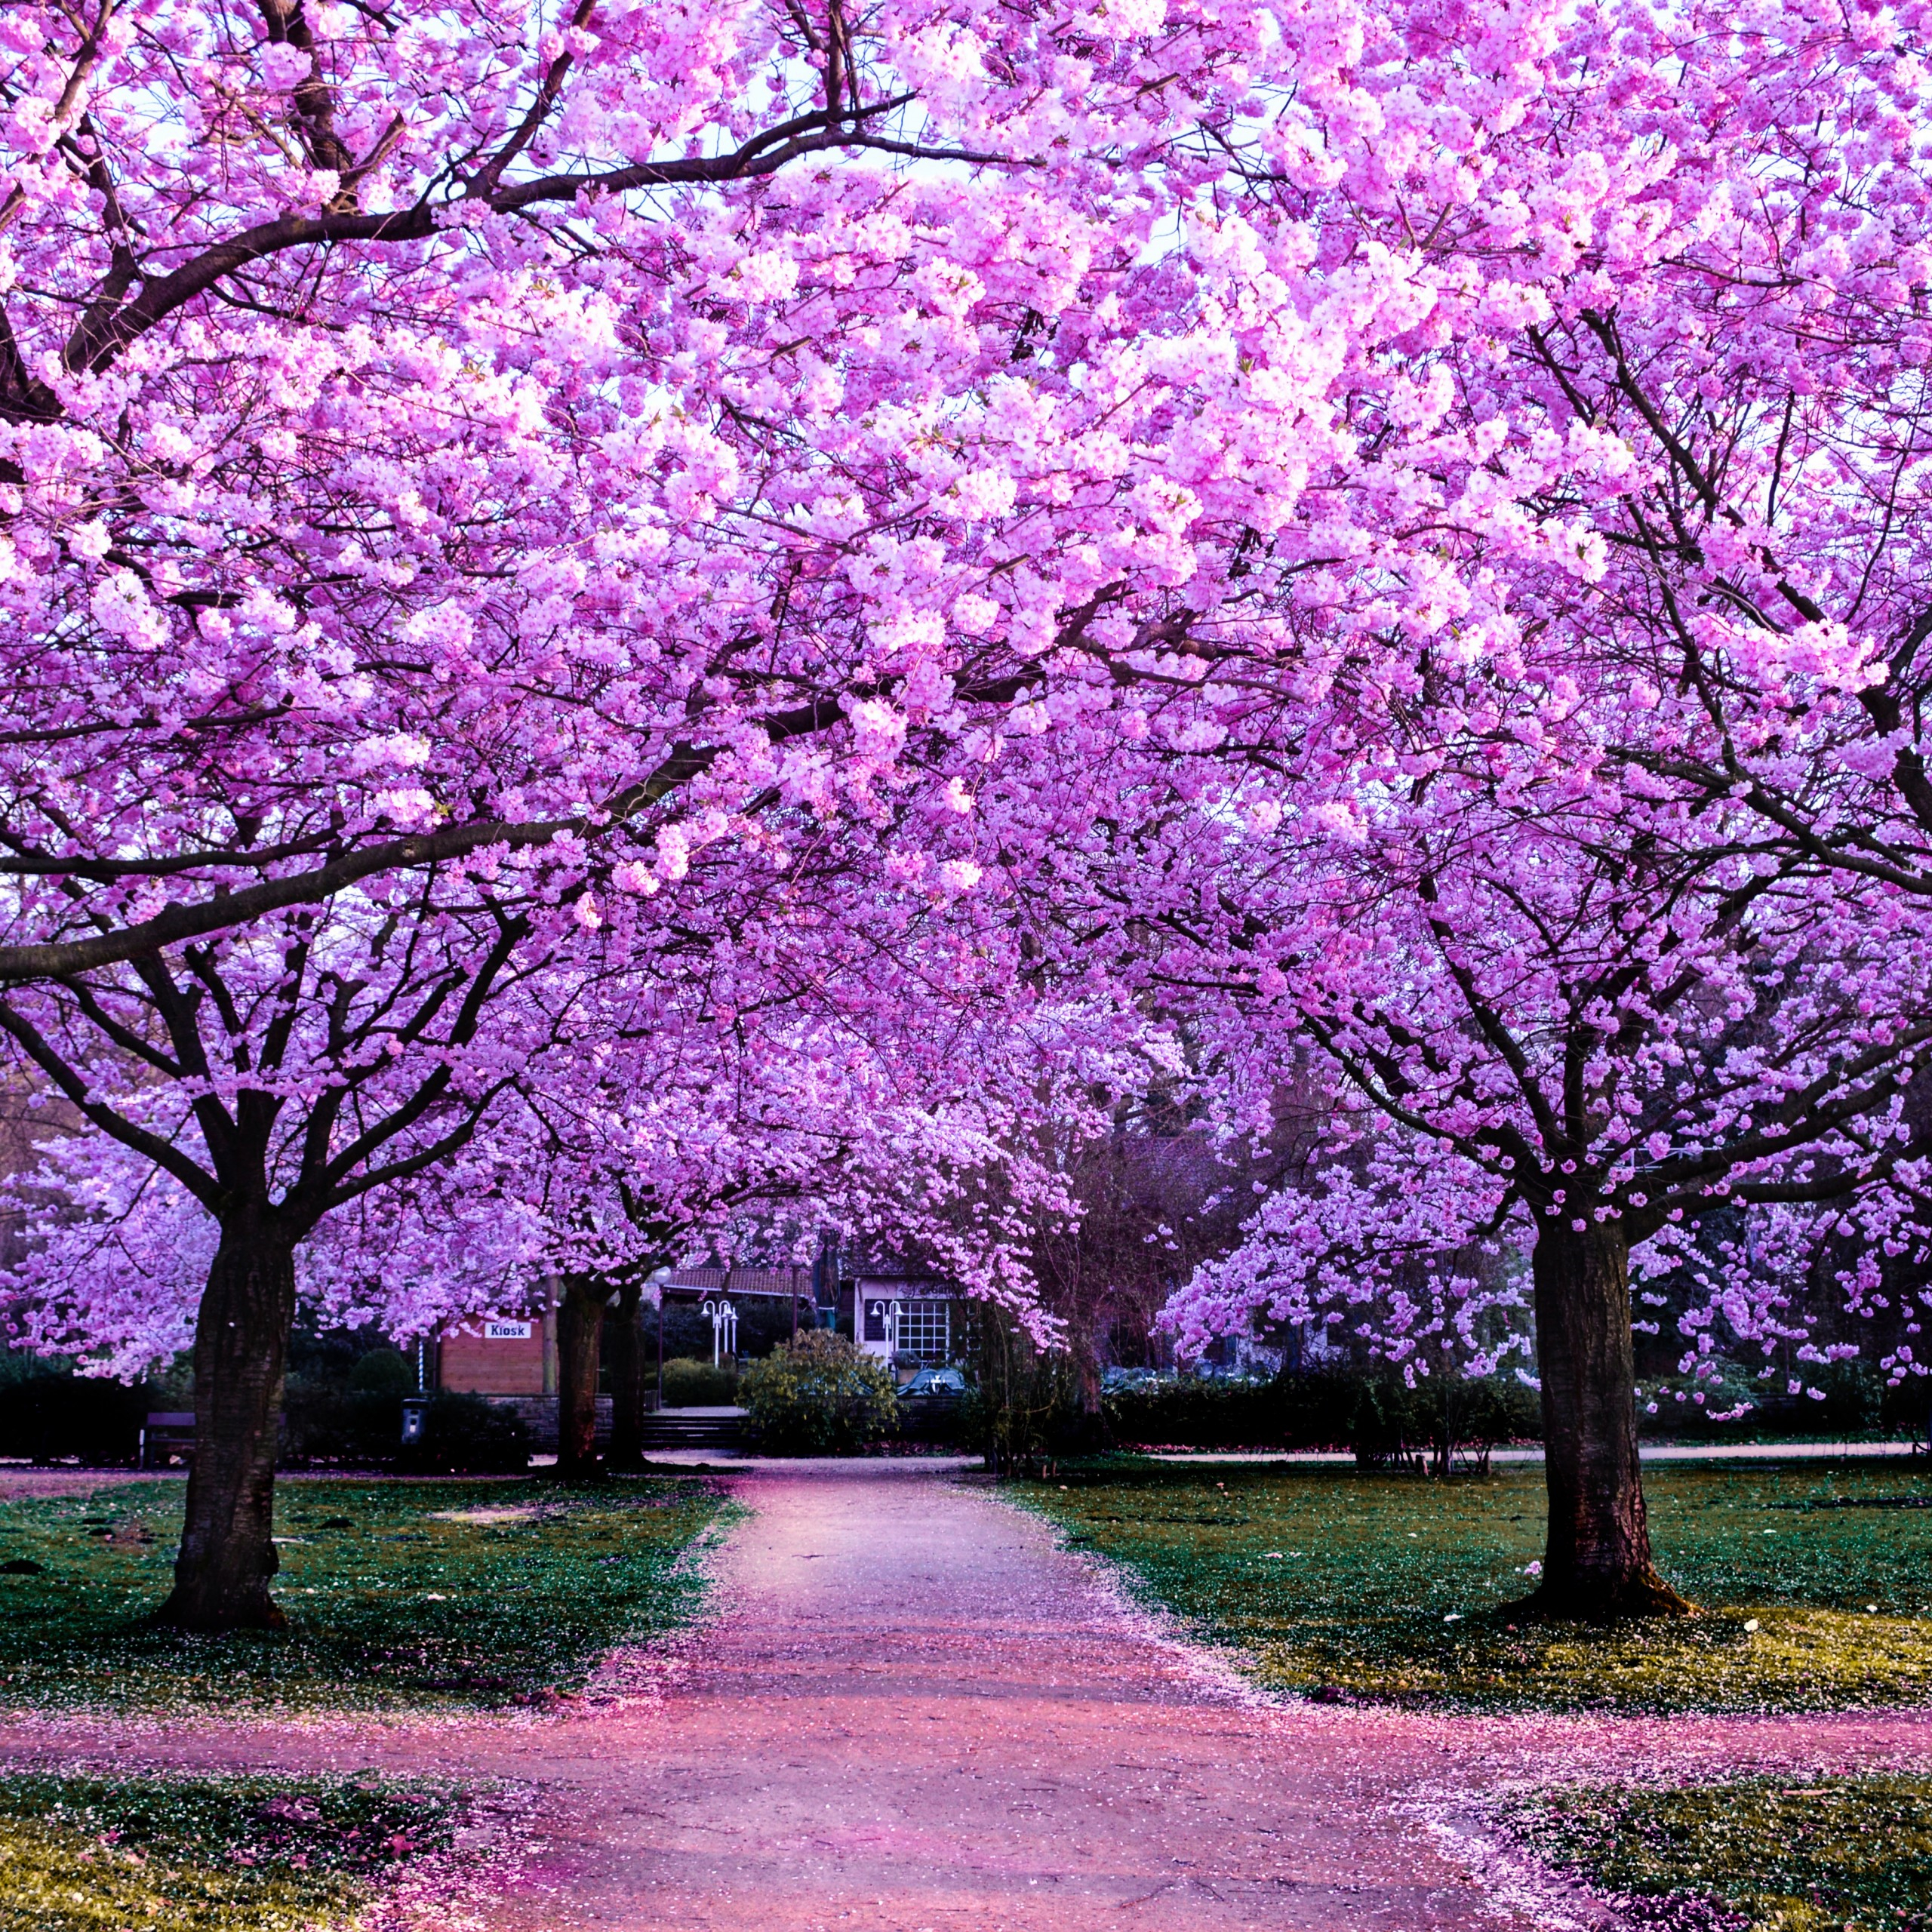 cherry blossom trees purple flowers pathway park floral 2560x2560 3300